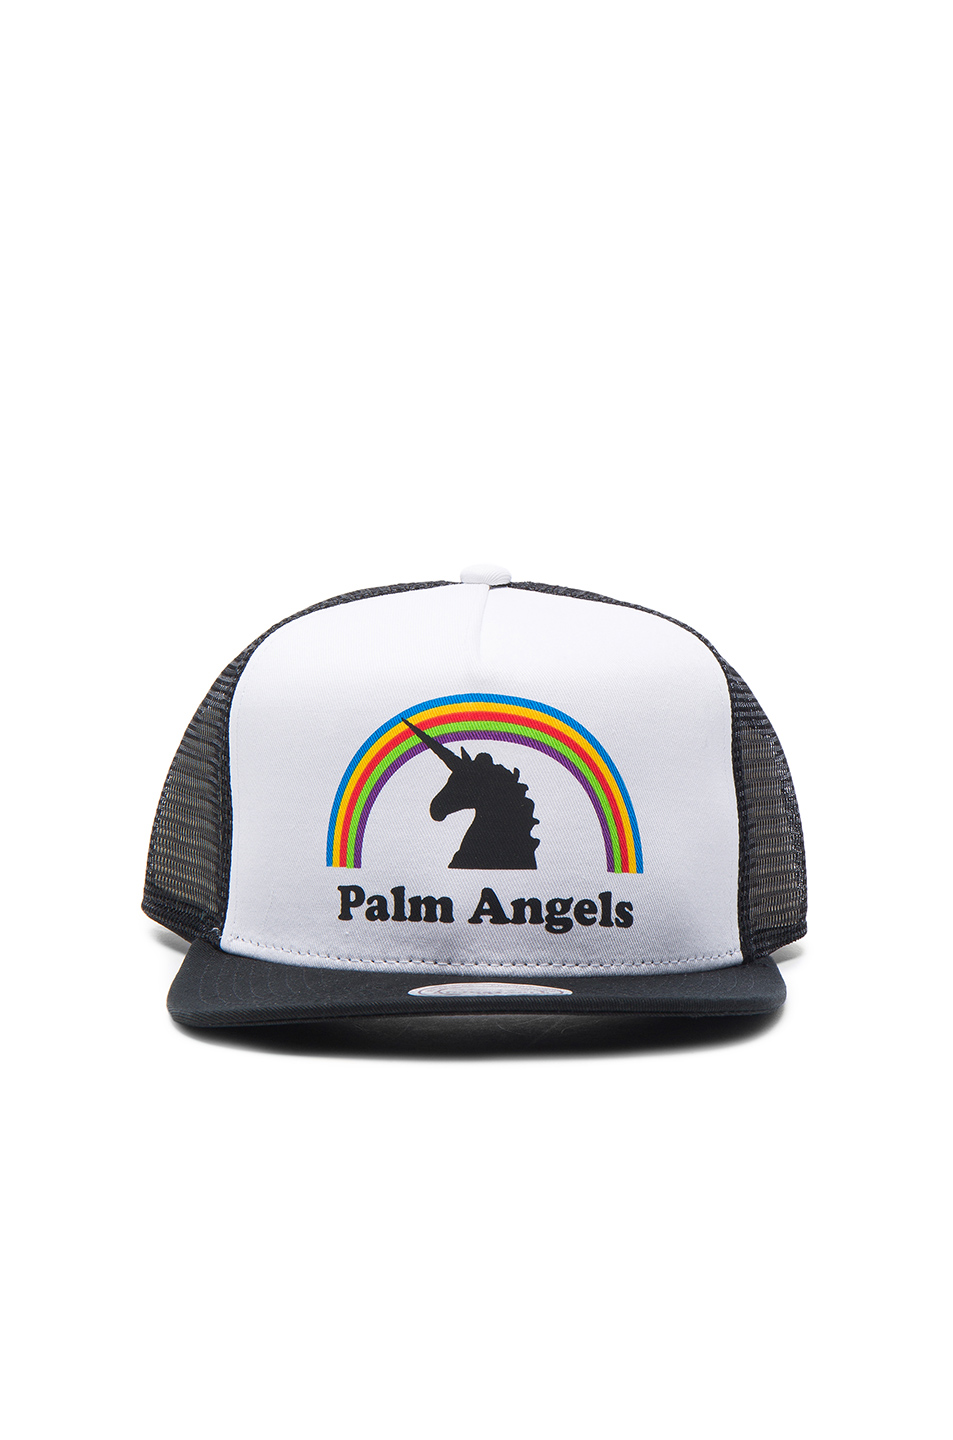 Palm Angels Unicorns Do Exist Cap in Black,White